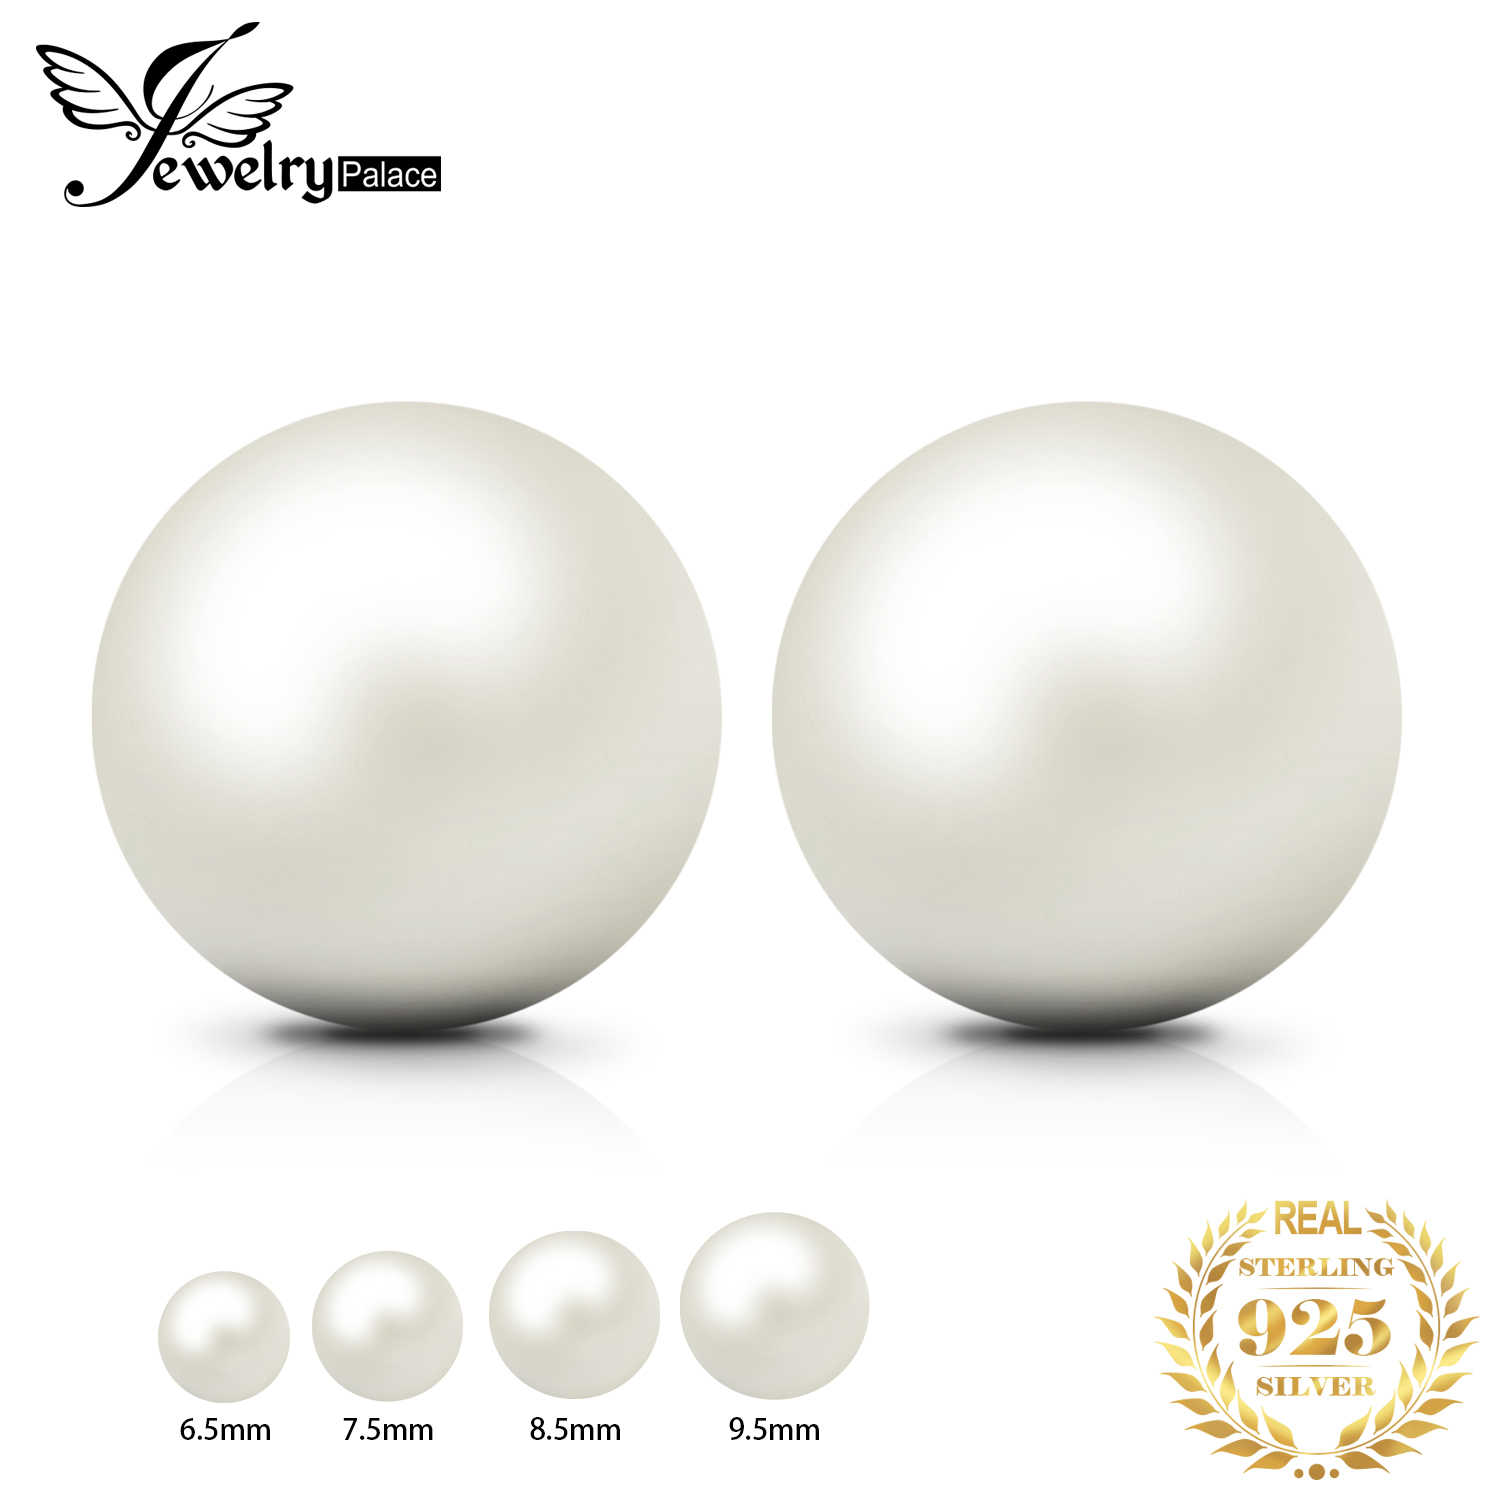 JPalace Freshwater Cultured Pearl Ball Stud Earrings 925 Sterling Silver Earrings For Women Korean Earings Fashion Jewelry 2019